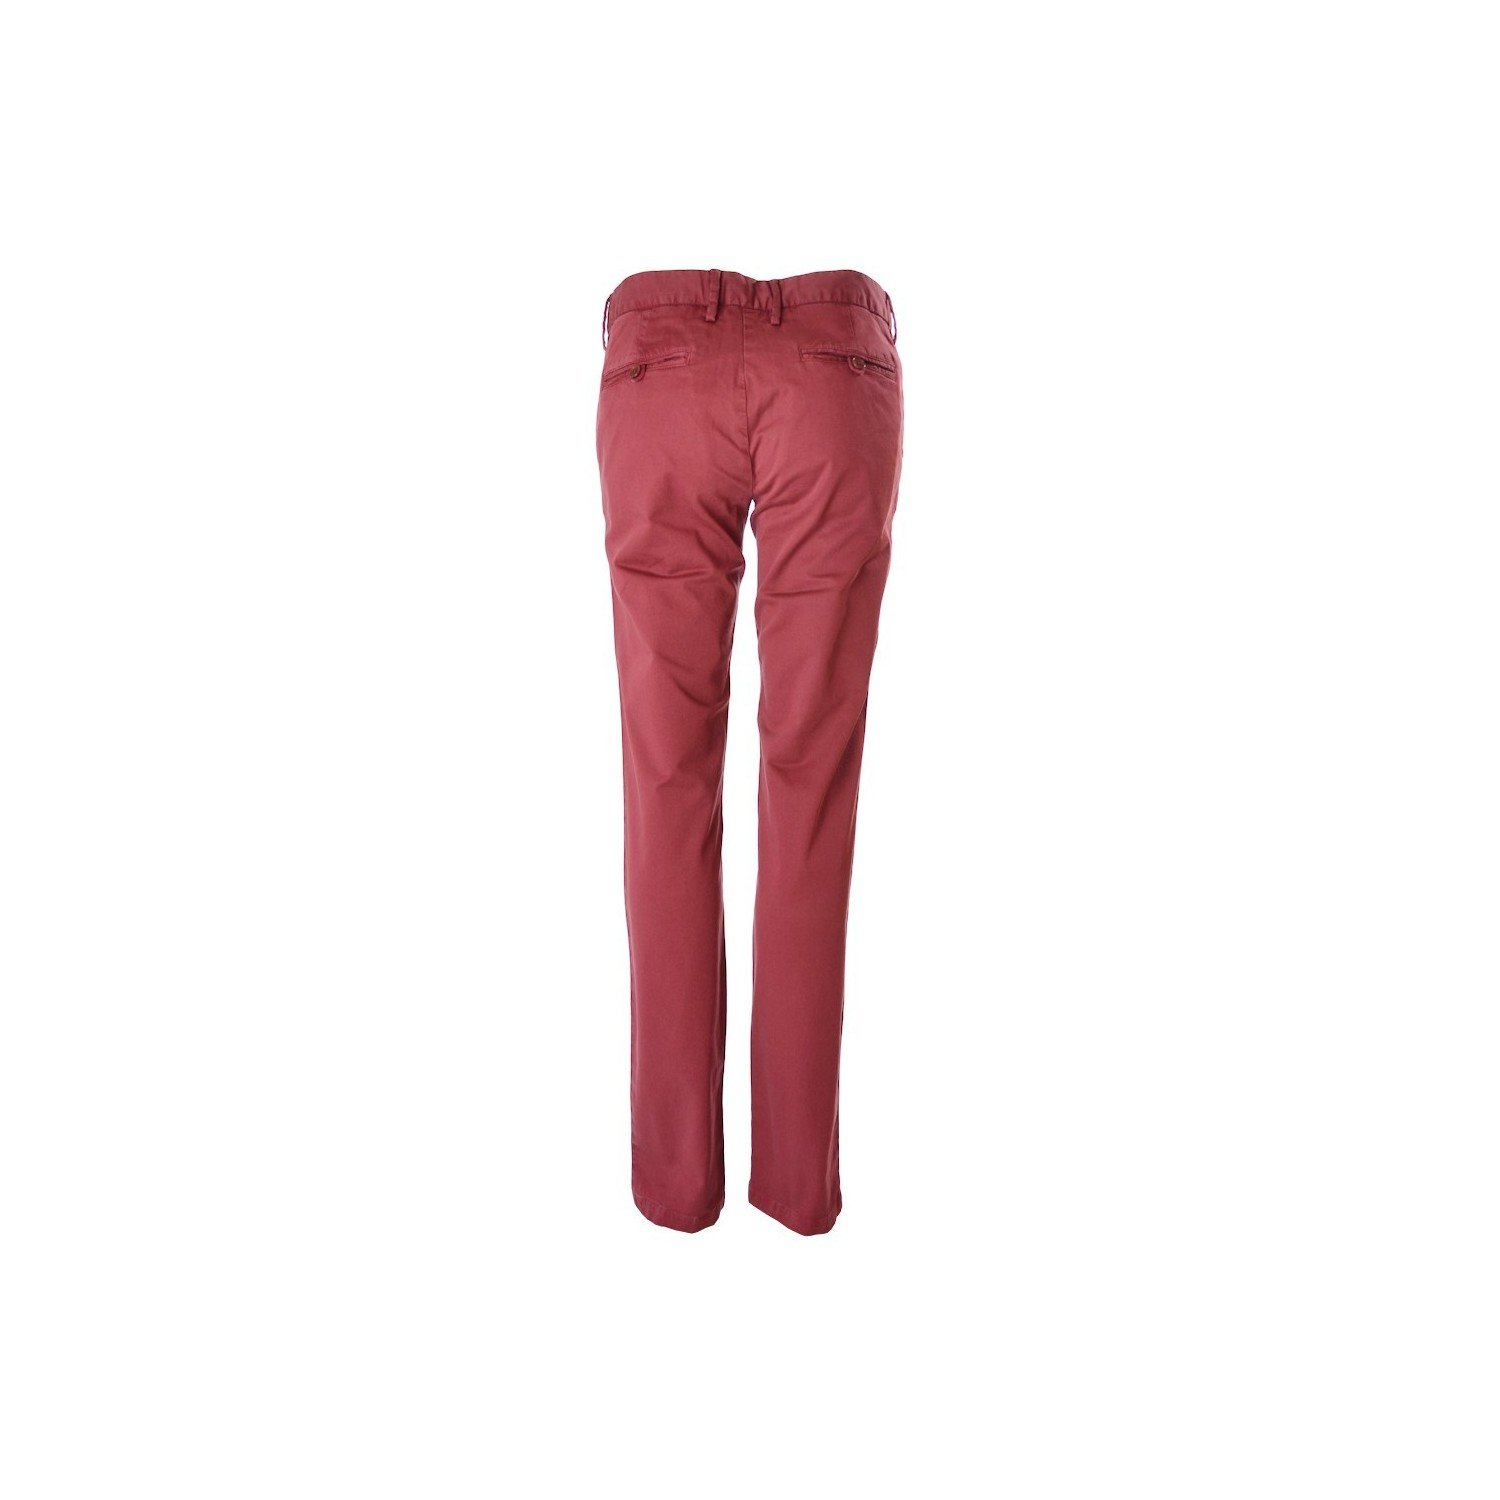 Amazon.com: GANT - Pantalon Chino Rouge Bordeaux Pour Femme ...